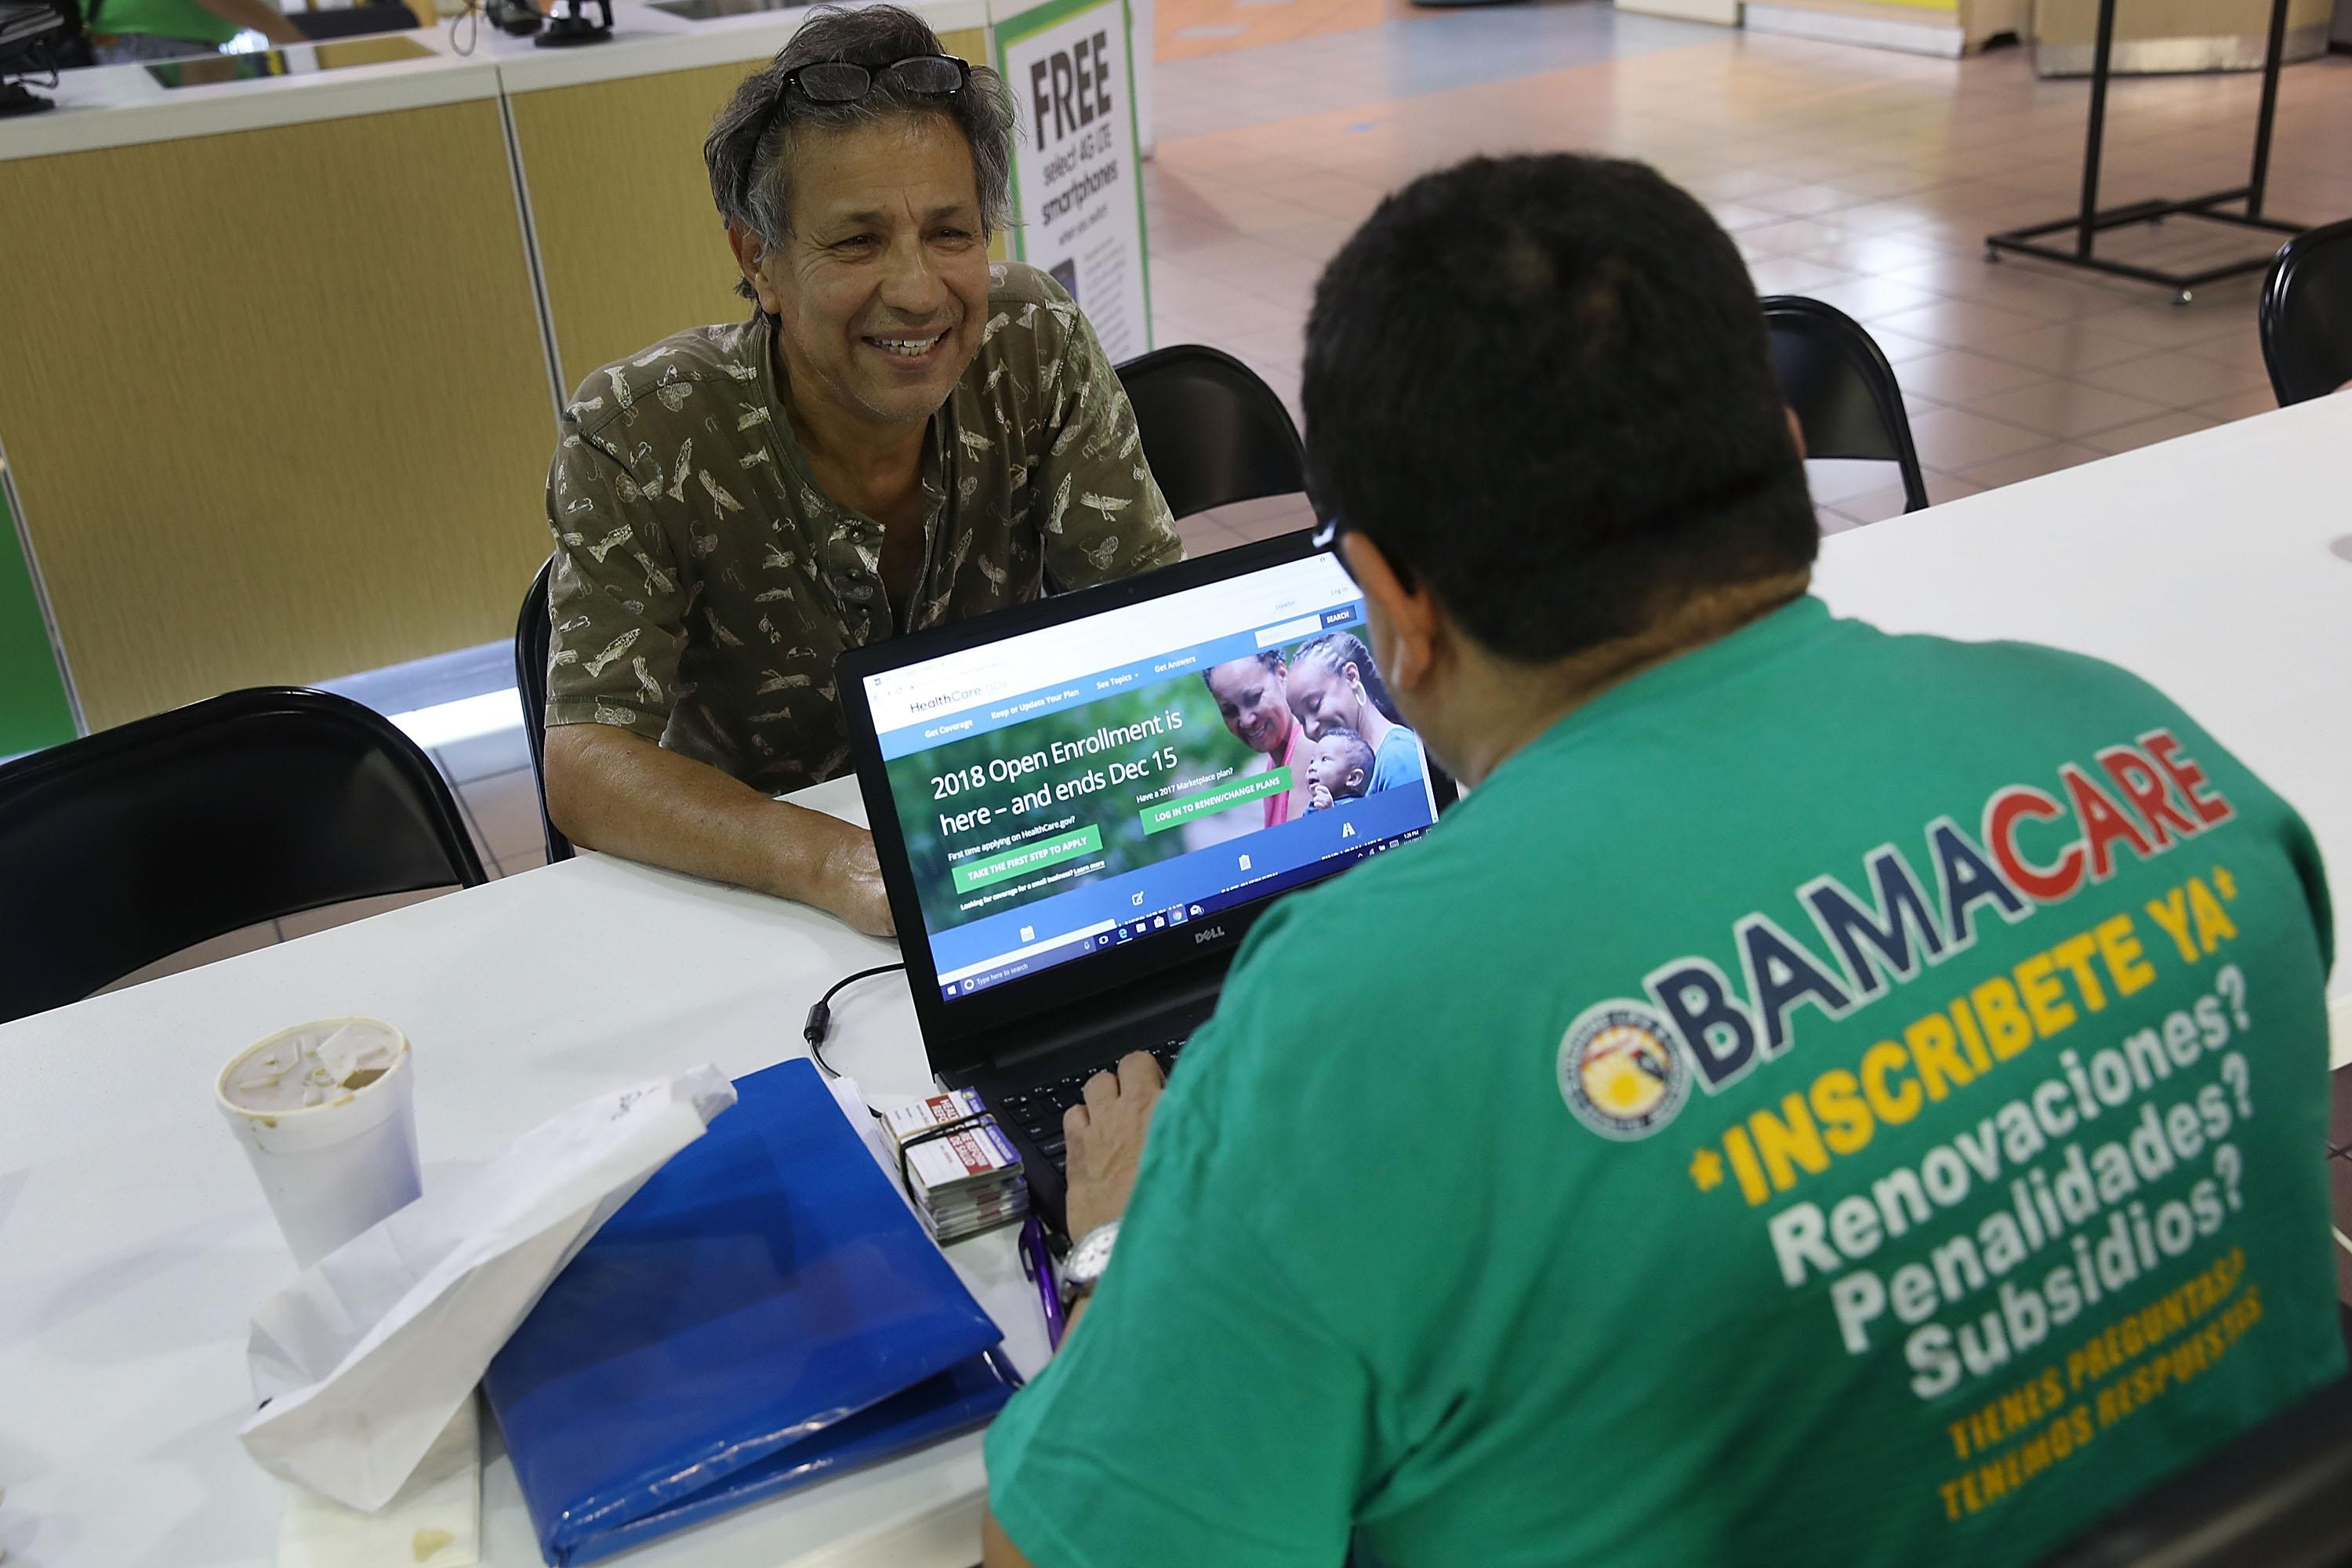 An insurance agent helps someone shop for insurance under the Affordable Care Act at a table in a mall.